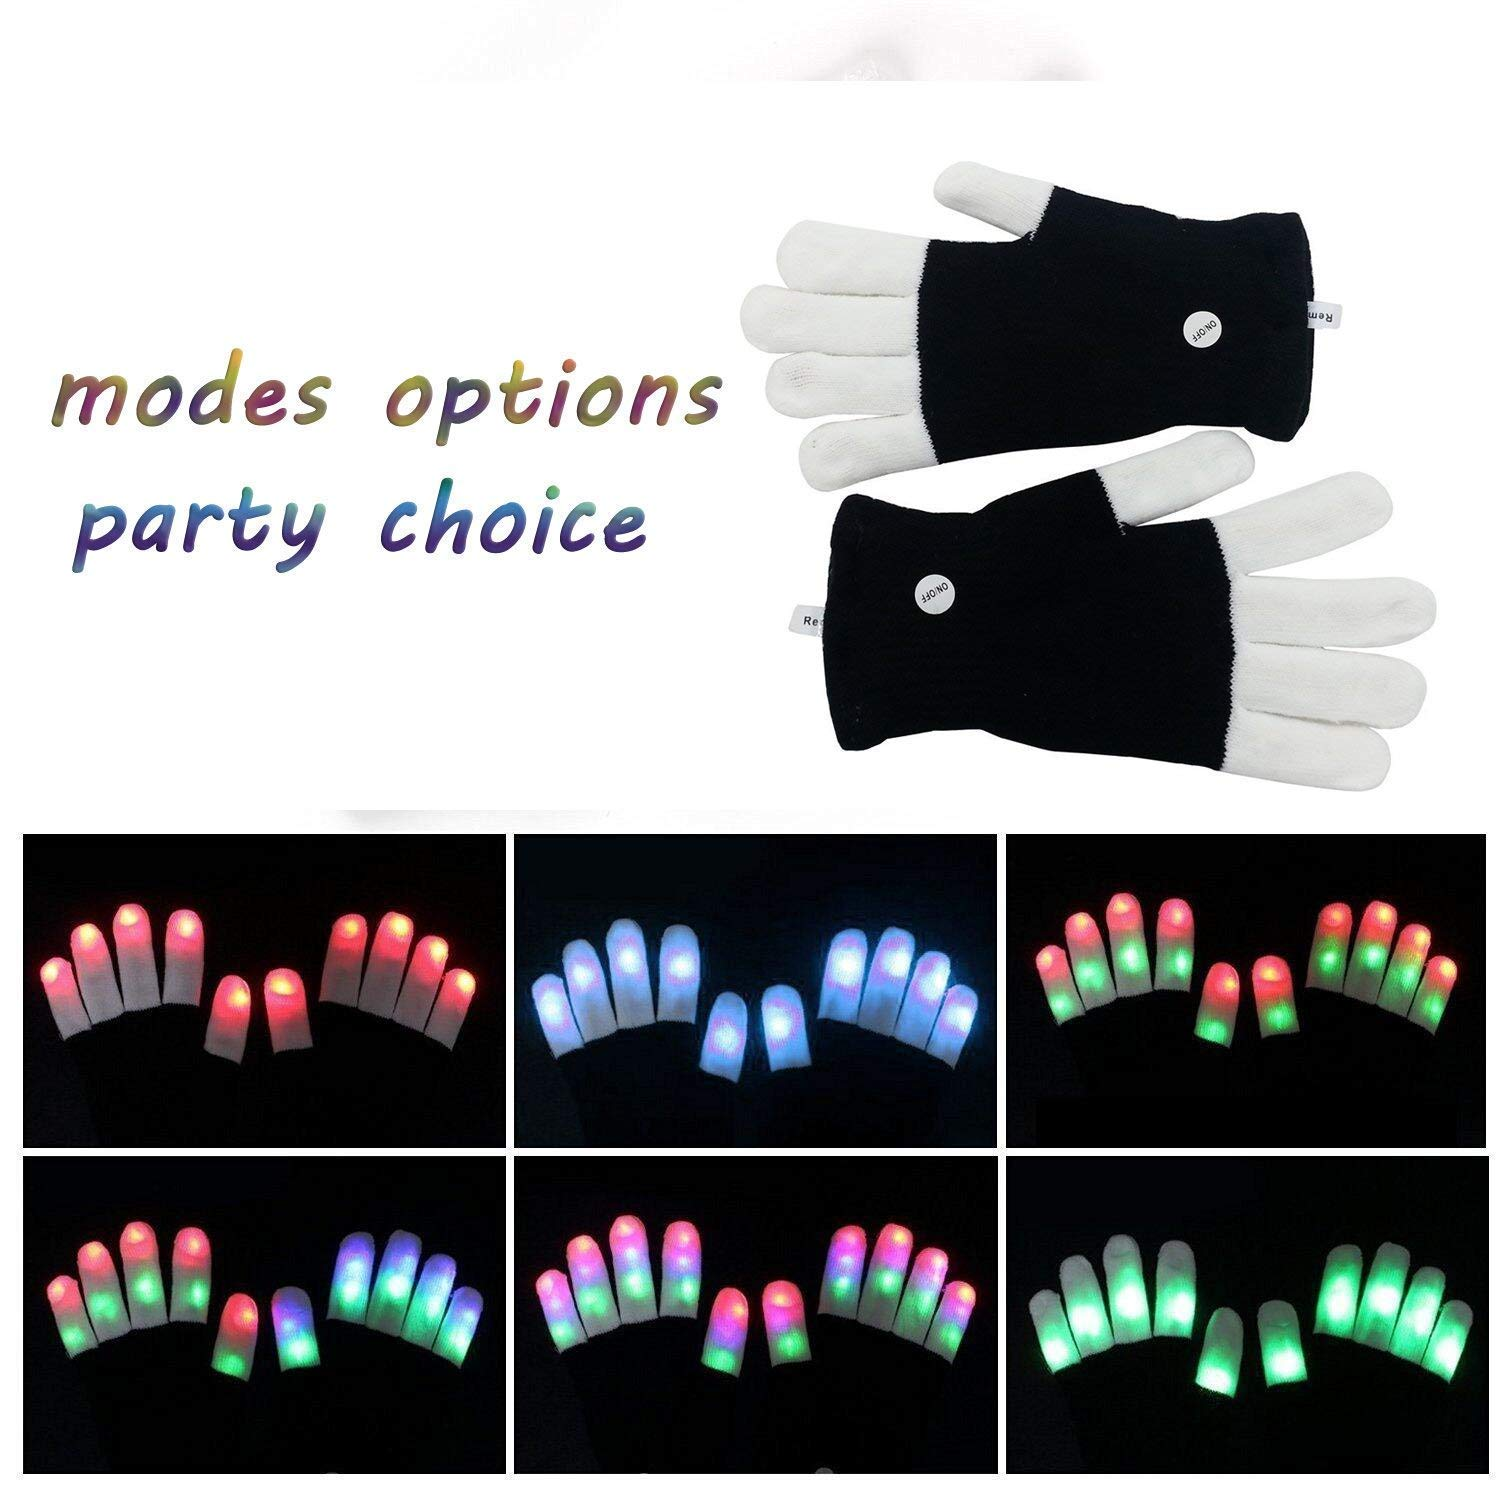 LSXD LED Gloves, Colorful Flashing Finger Light Adults'Gloves, 3colors 6modes Warm Gloves for Halloween, Christmas Birthday Party